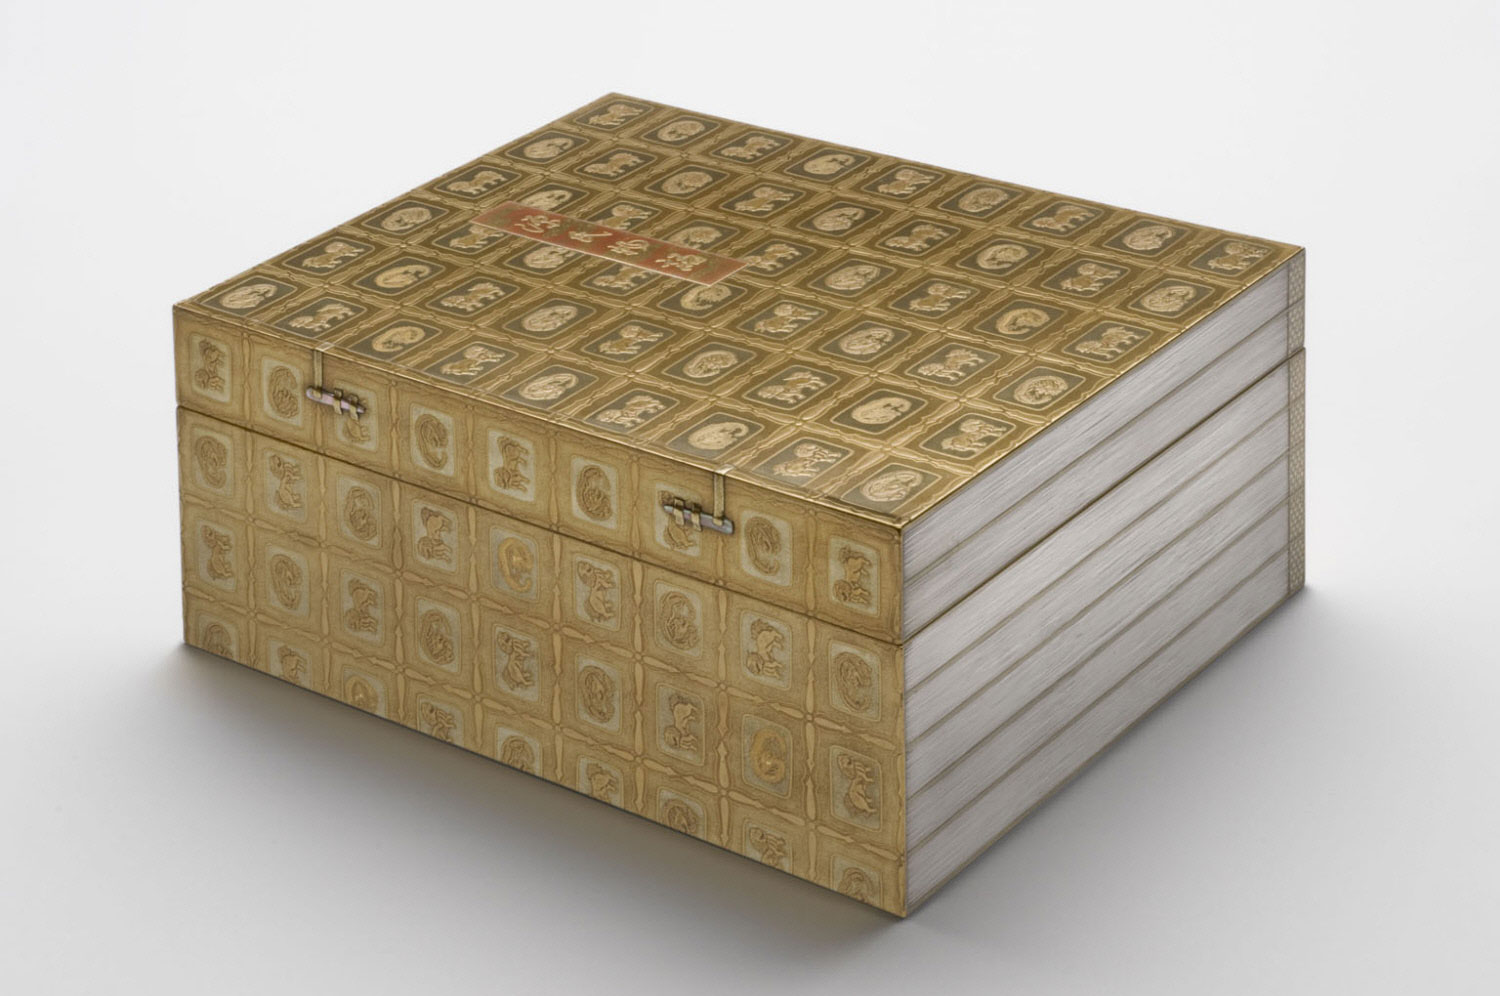 Accessory Box (Tebako) in the Form of a Bound Set of Tale of Genji Volumes